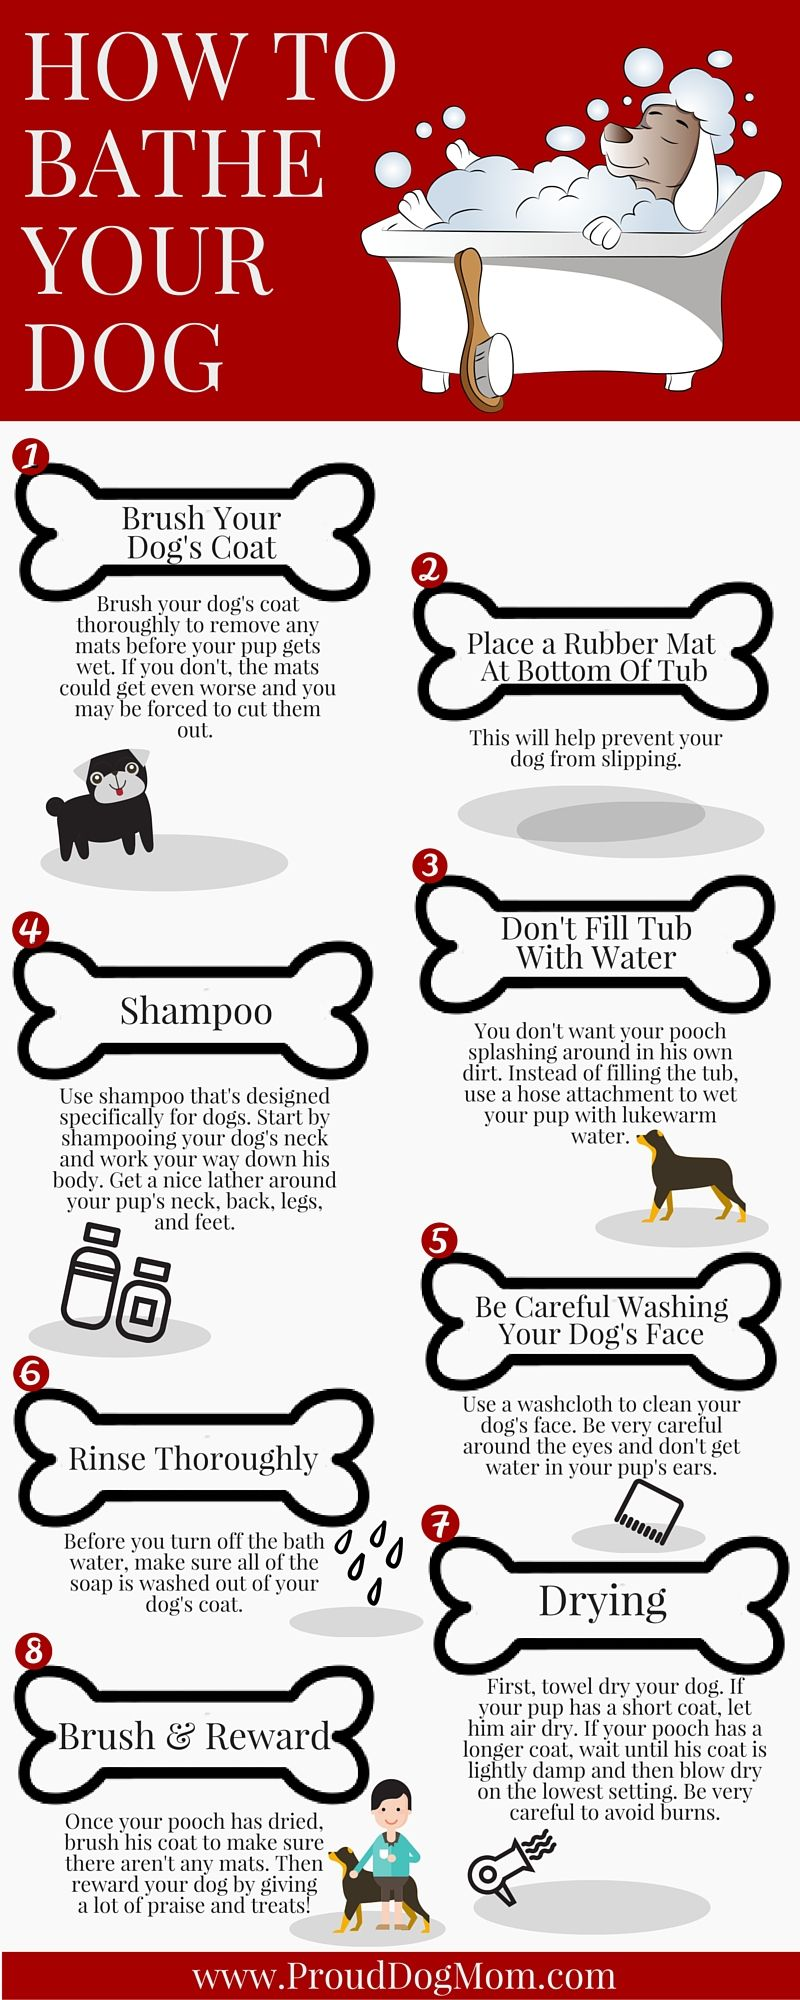 How To Bathe Your Dog In 8 Steps Infographic